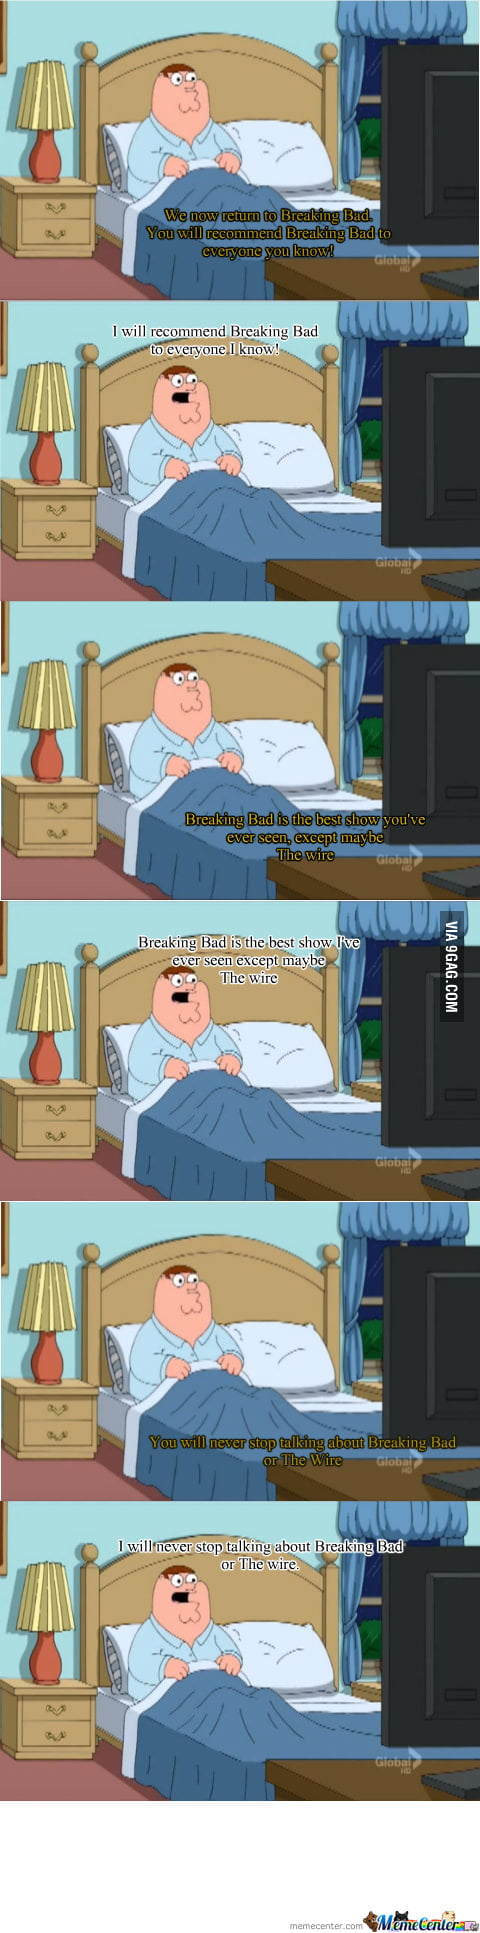 Family Guy has got it all figured out!